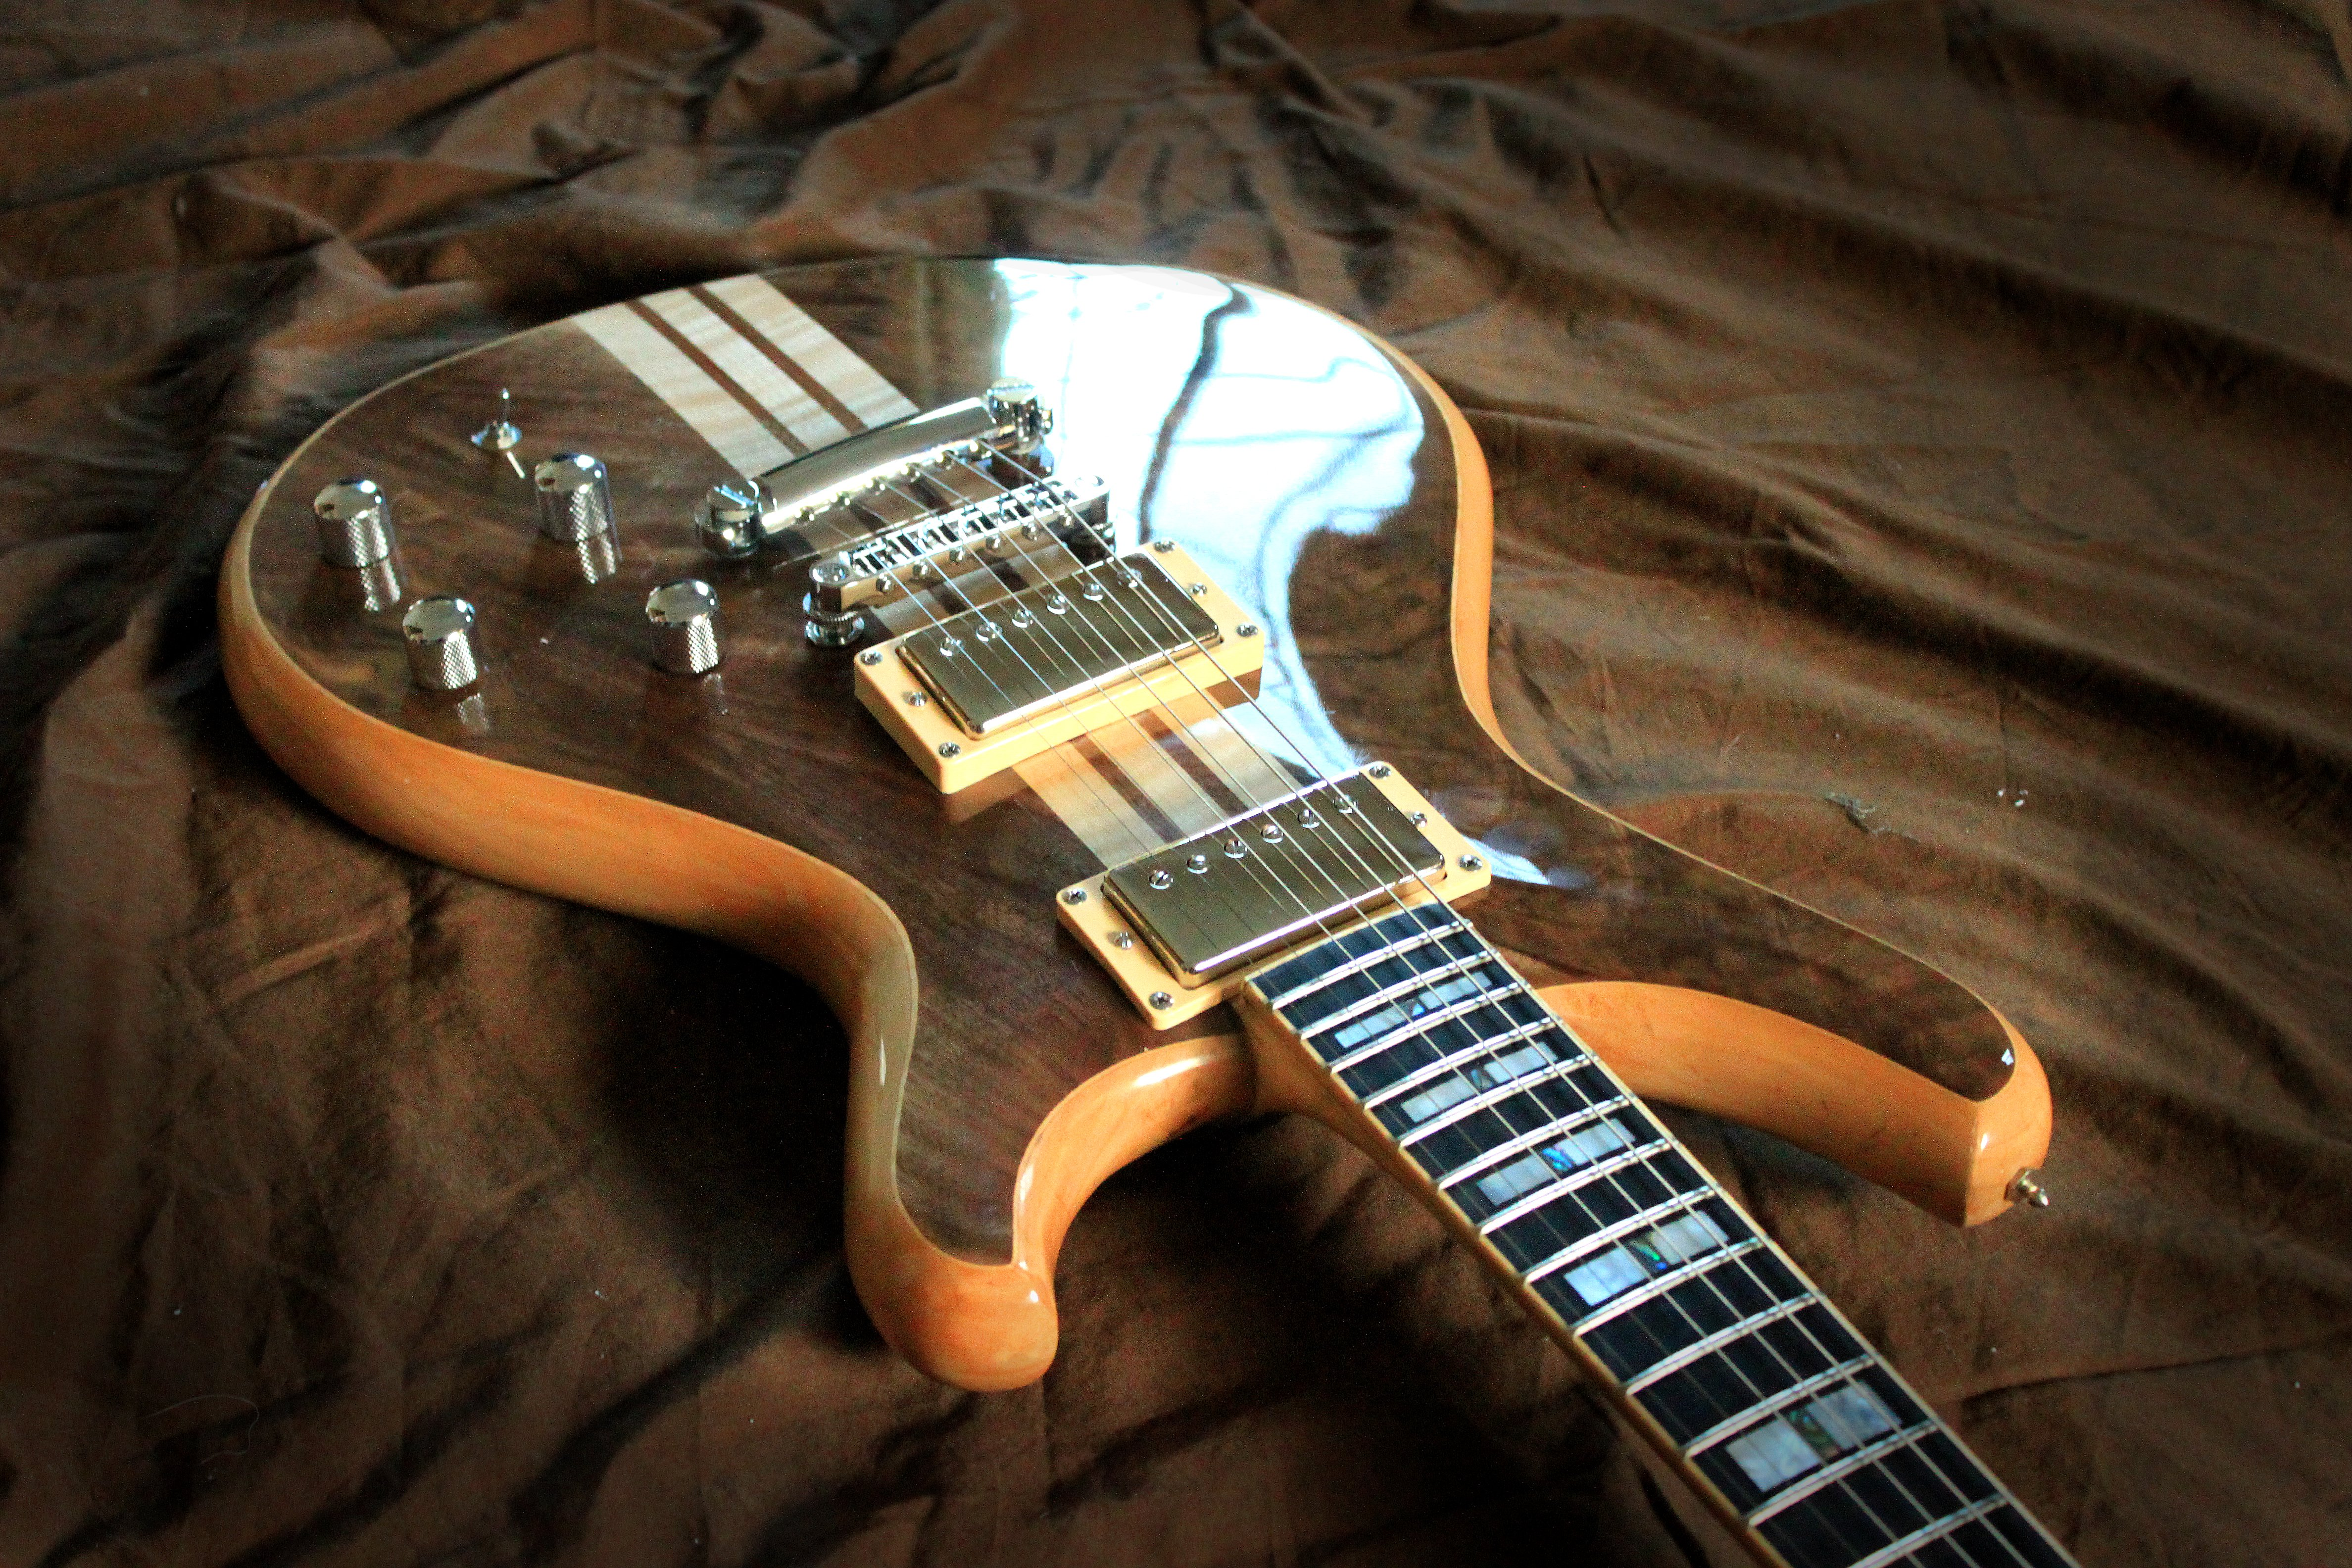 Music Guitar Wallpapers Hd Desktop And Mobile Backgrounds: Electric Gibson Fender Guitar Reflection Strings Macro